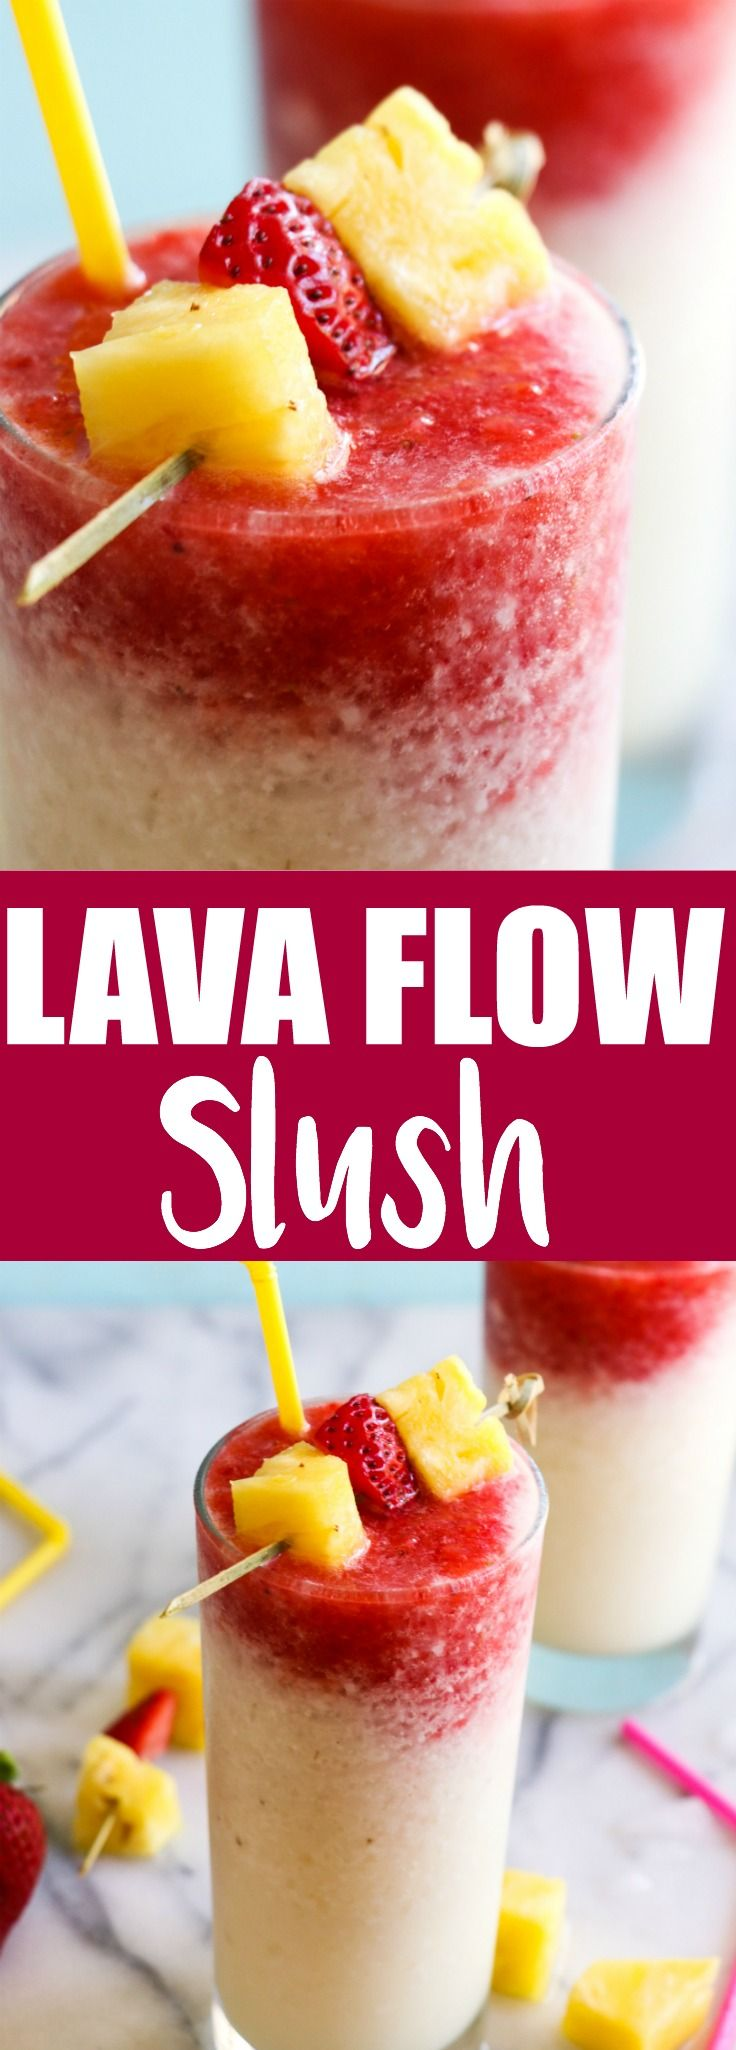 (Virgin) Lava Flow Slush and Recipe Video! Enjoy the tropical flavors of pineapple, coconut and banana swirled with strawberry in this frosty and slushy drink! Feel free to add a little rum if desired! The perfect summertime drink!